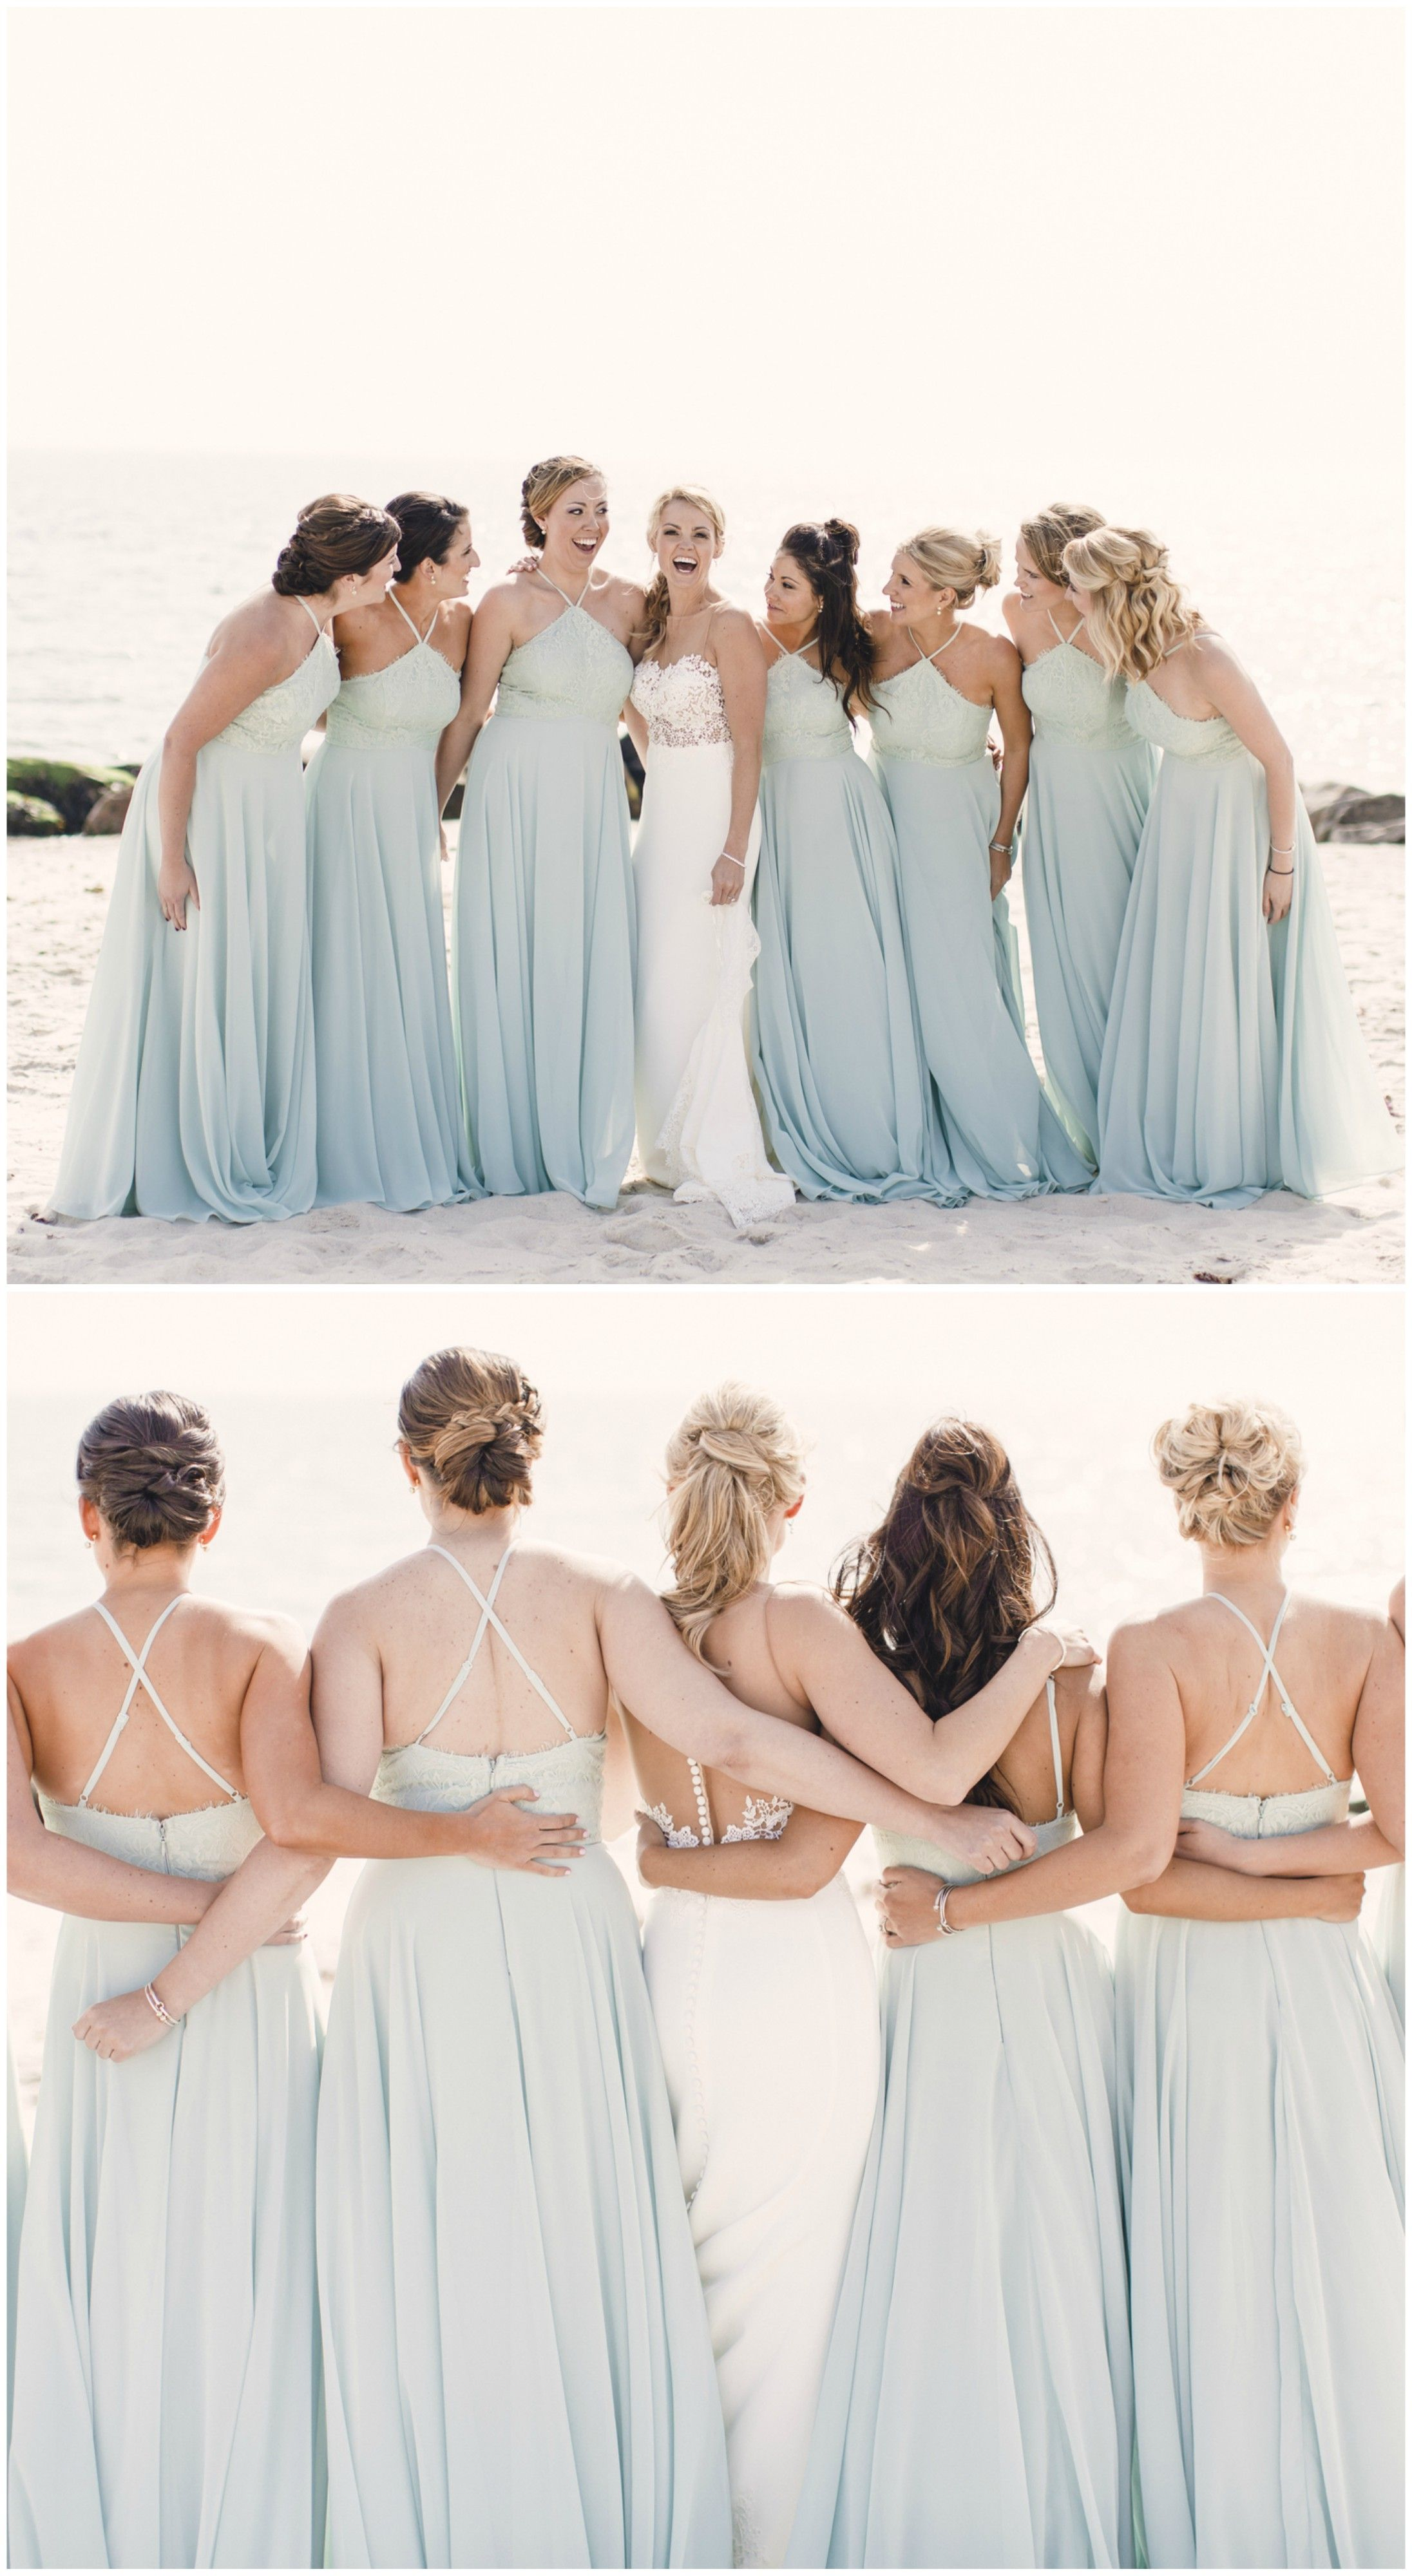 Romantic spring mansion wedding waterford ct party lighting beach wedding bridal party light blue bridesmaid dresses matching long gowns pin to ombrellifo Image collections